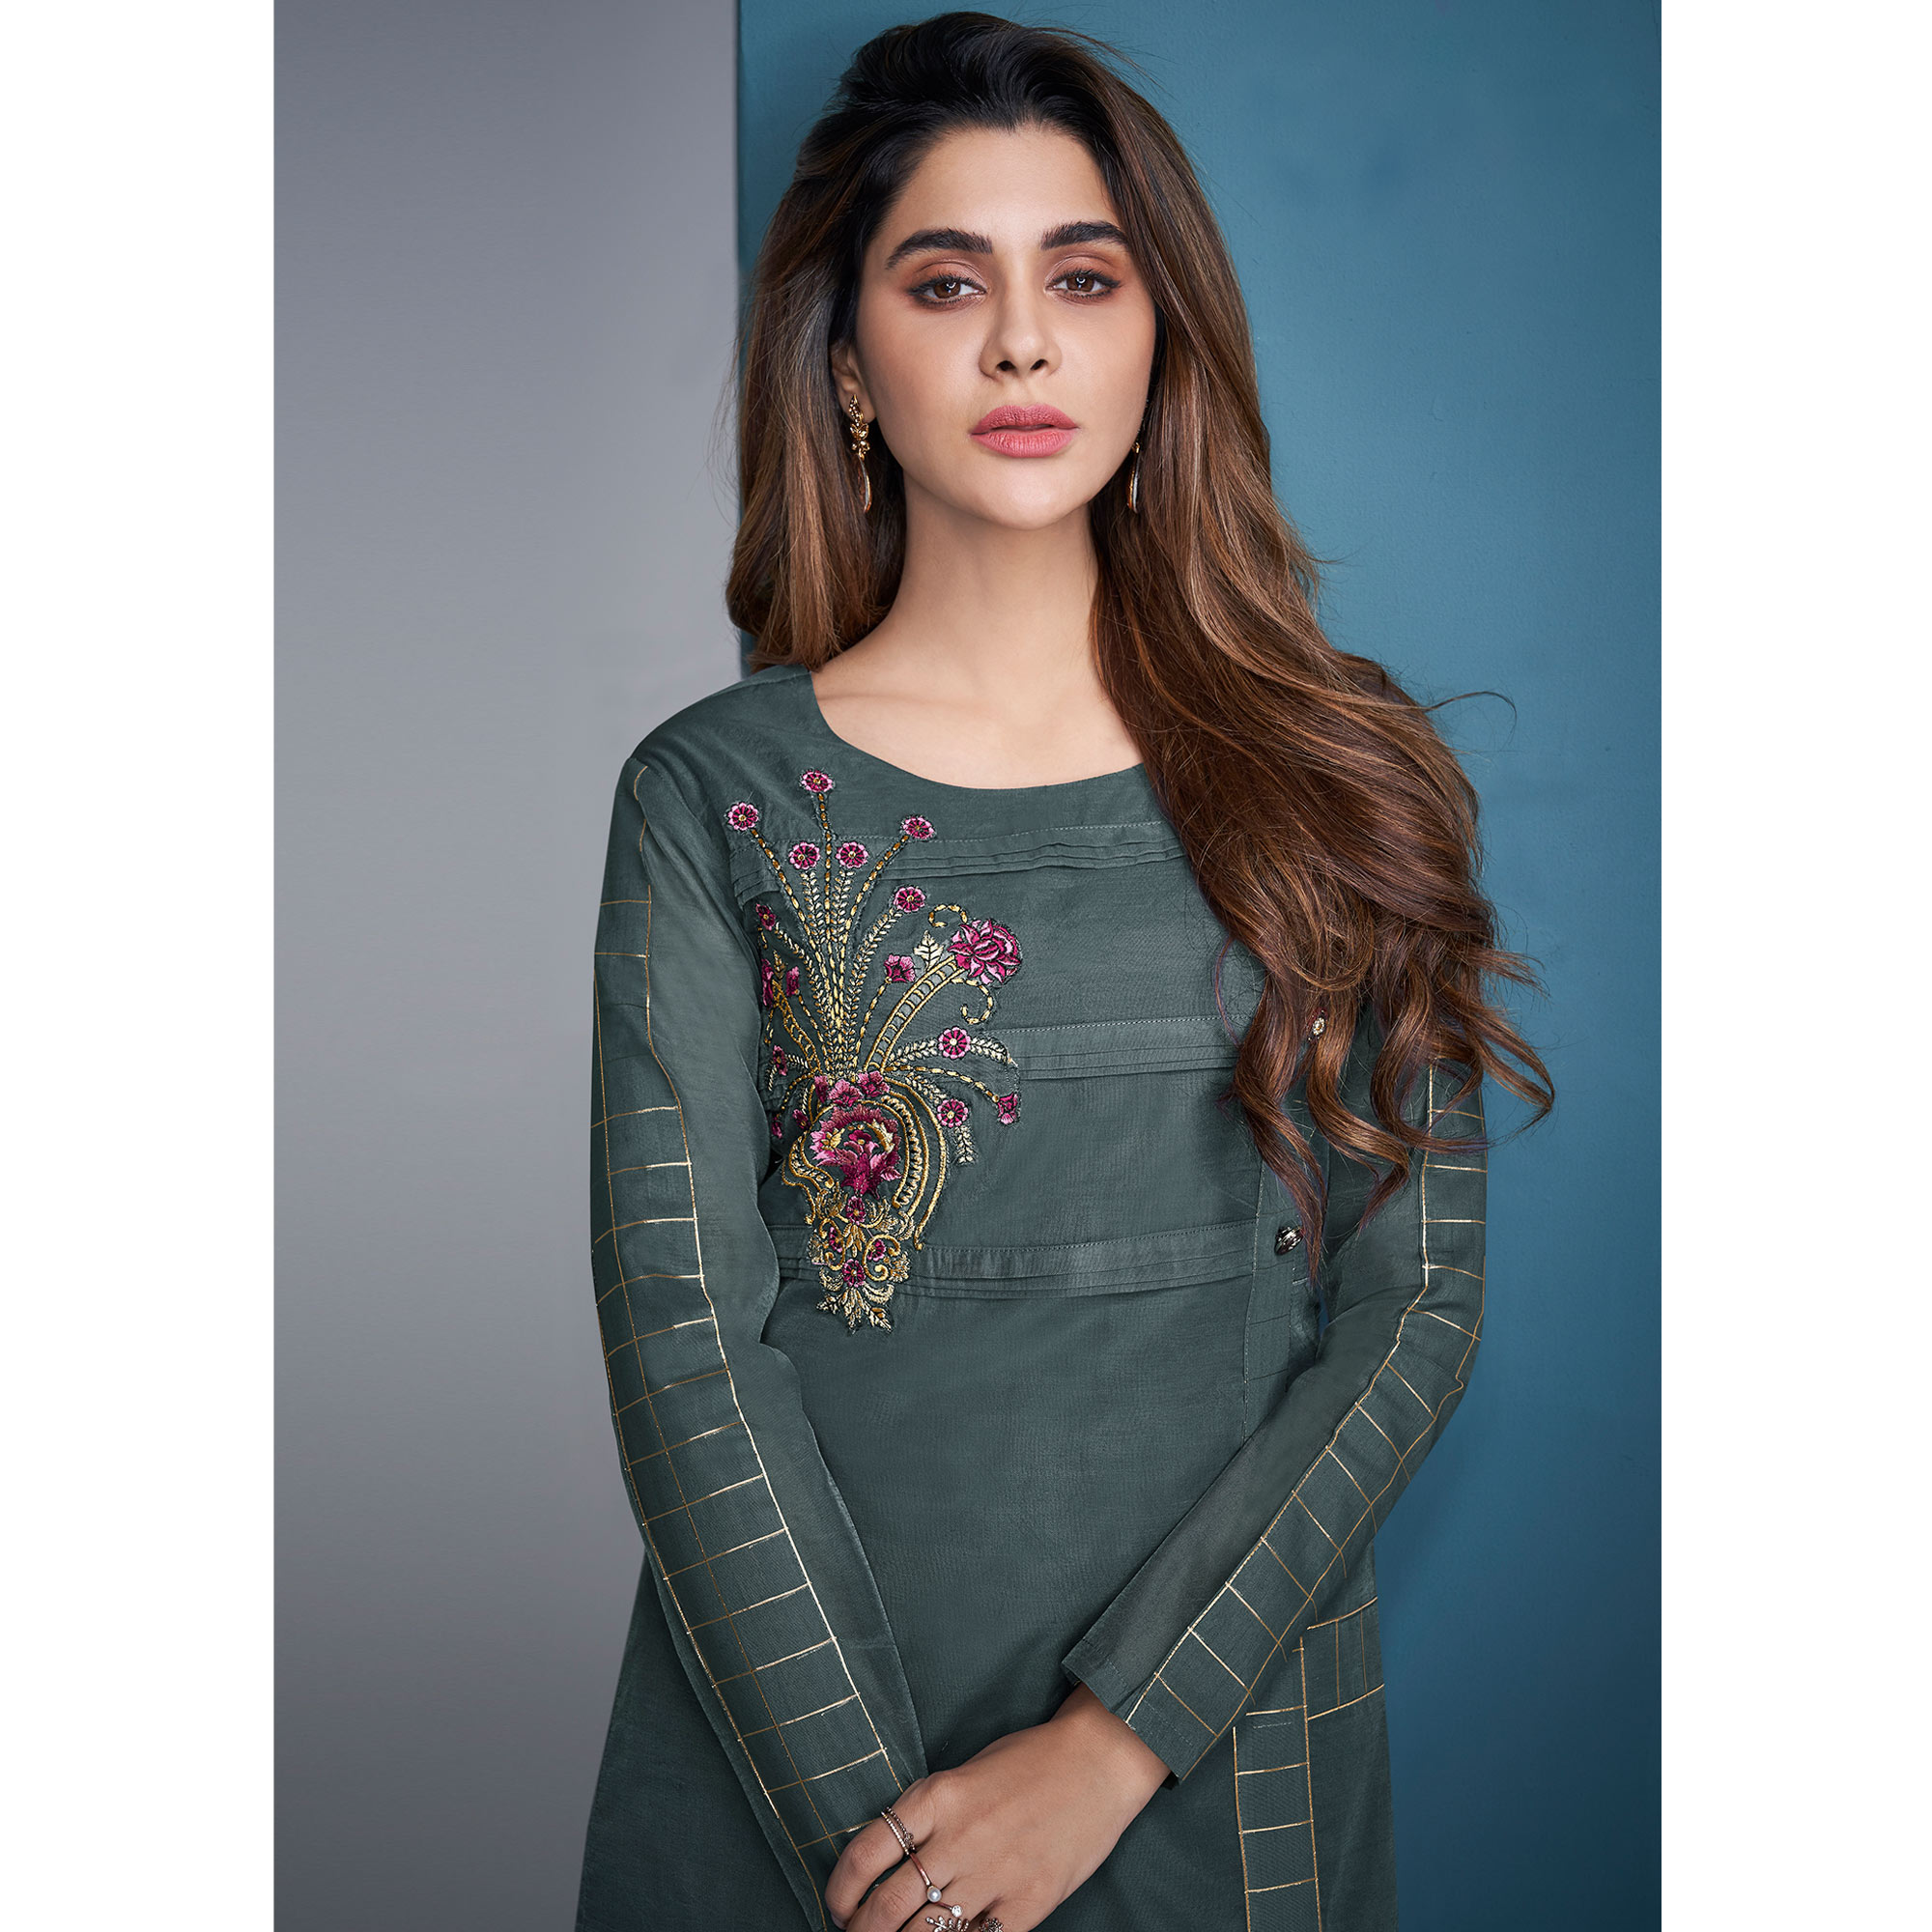 Trendy Grey Colored Party Wear Floral Embroidered Modal Silk Kurti-Pant Set